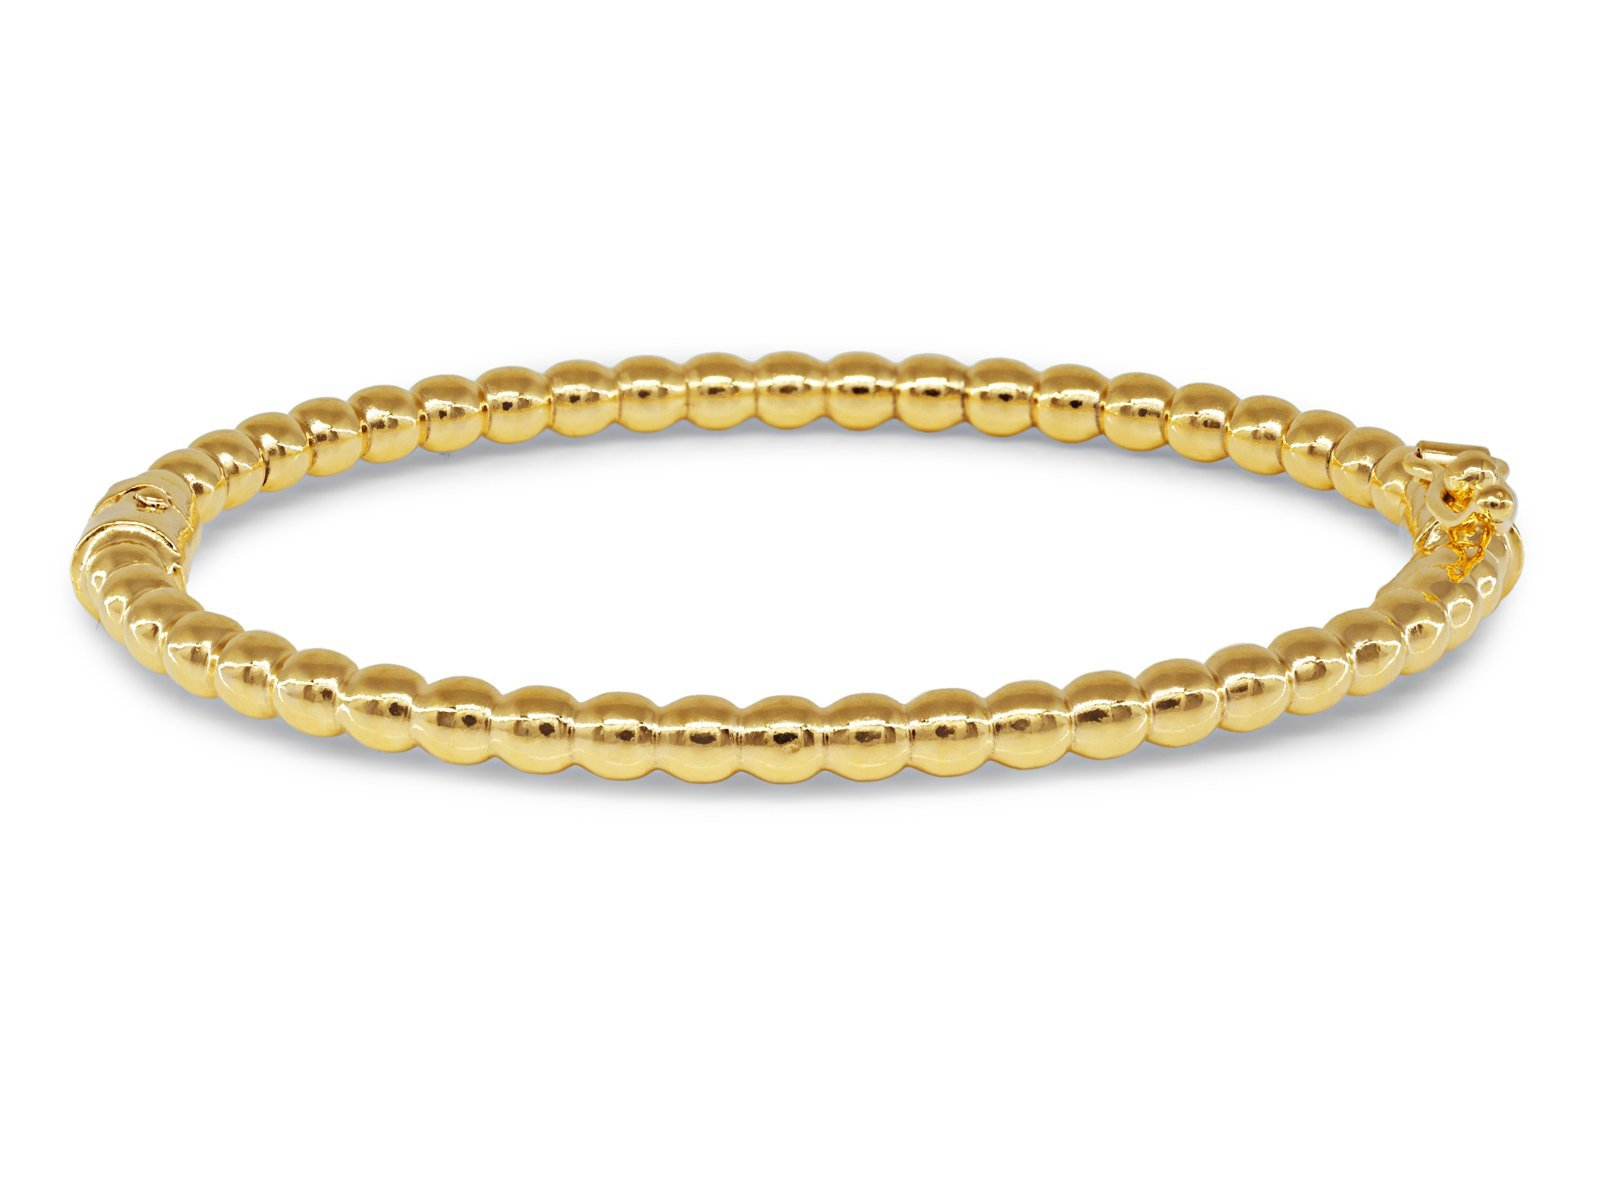 Beckids Gold Plated Sterling Silver Twisted Bangle For Girls Ages 3-9